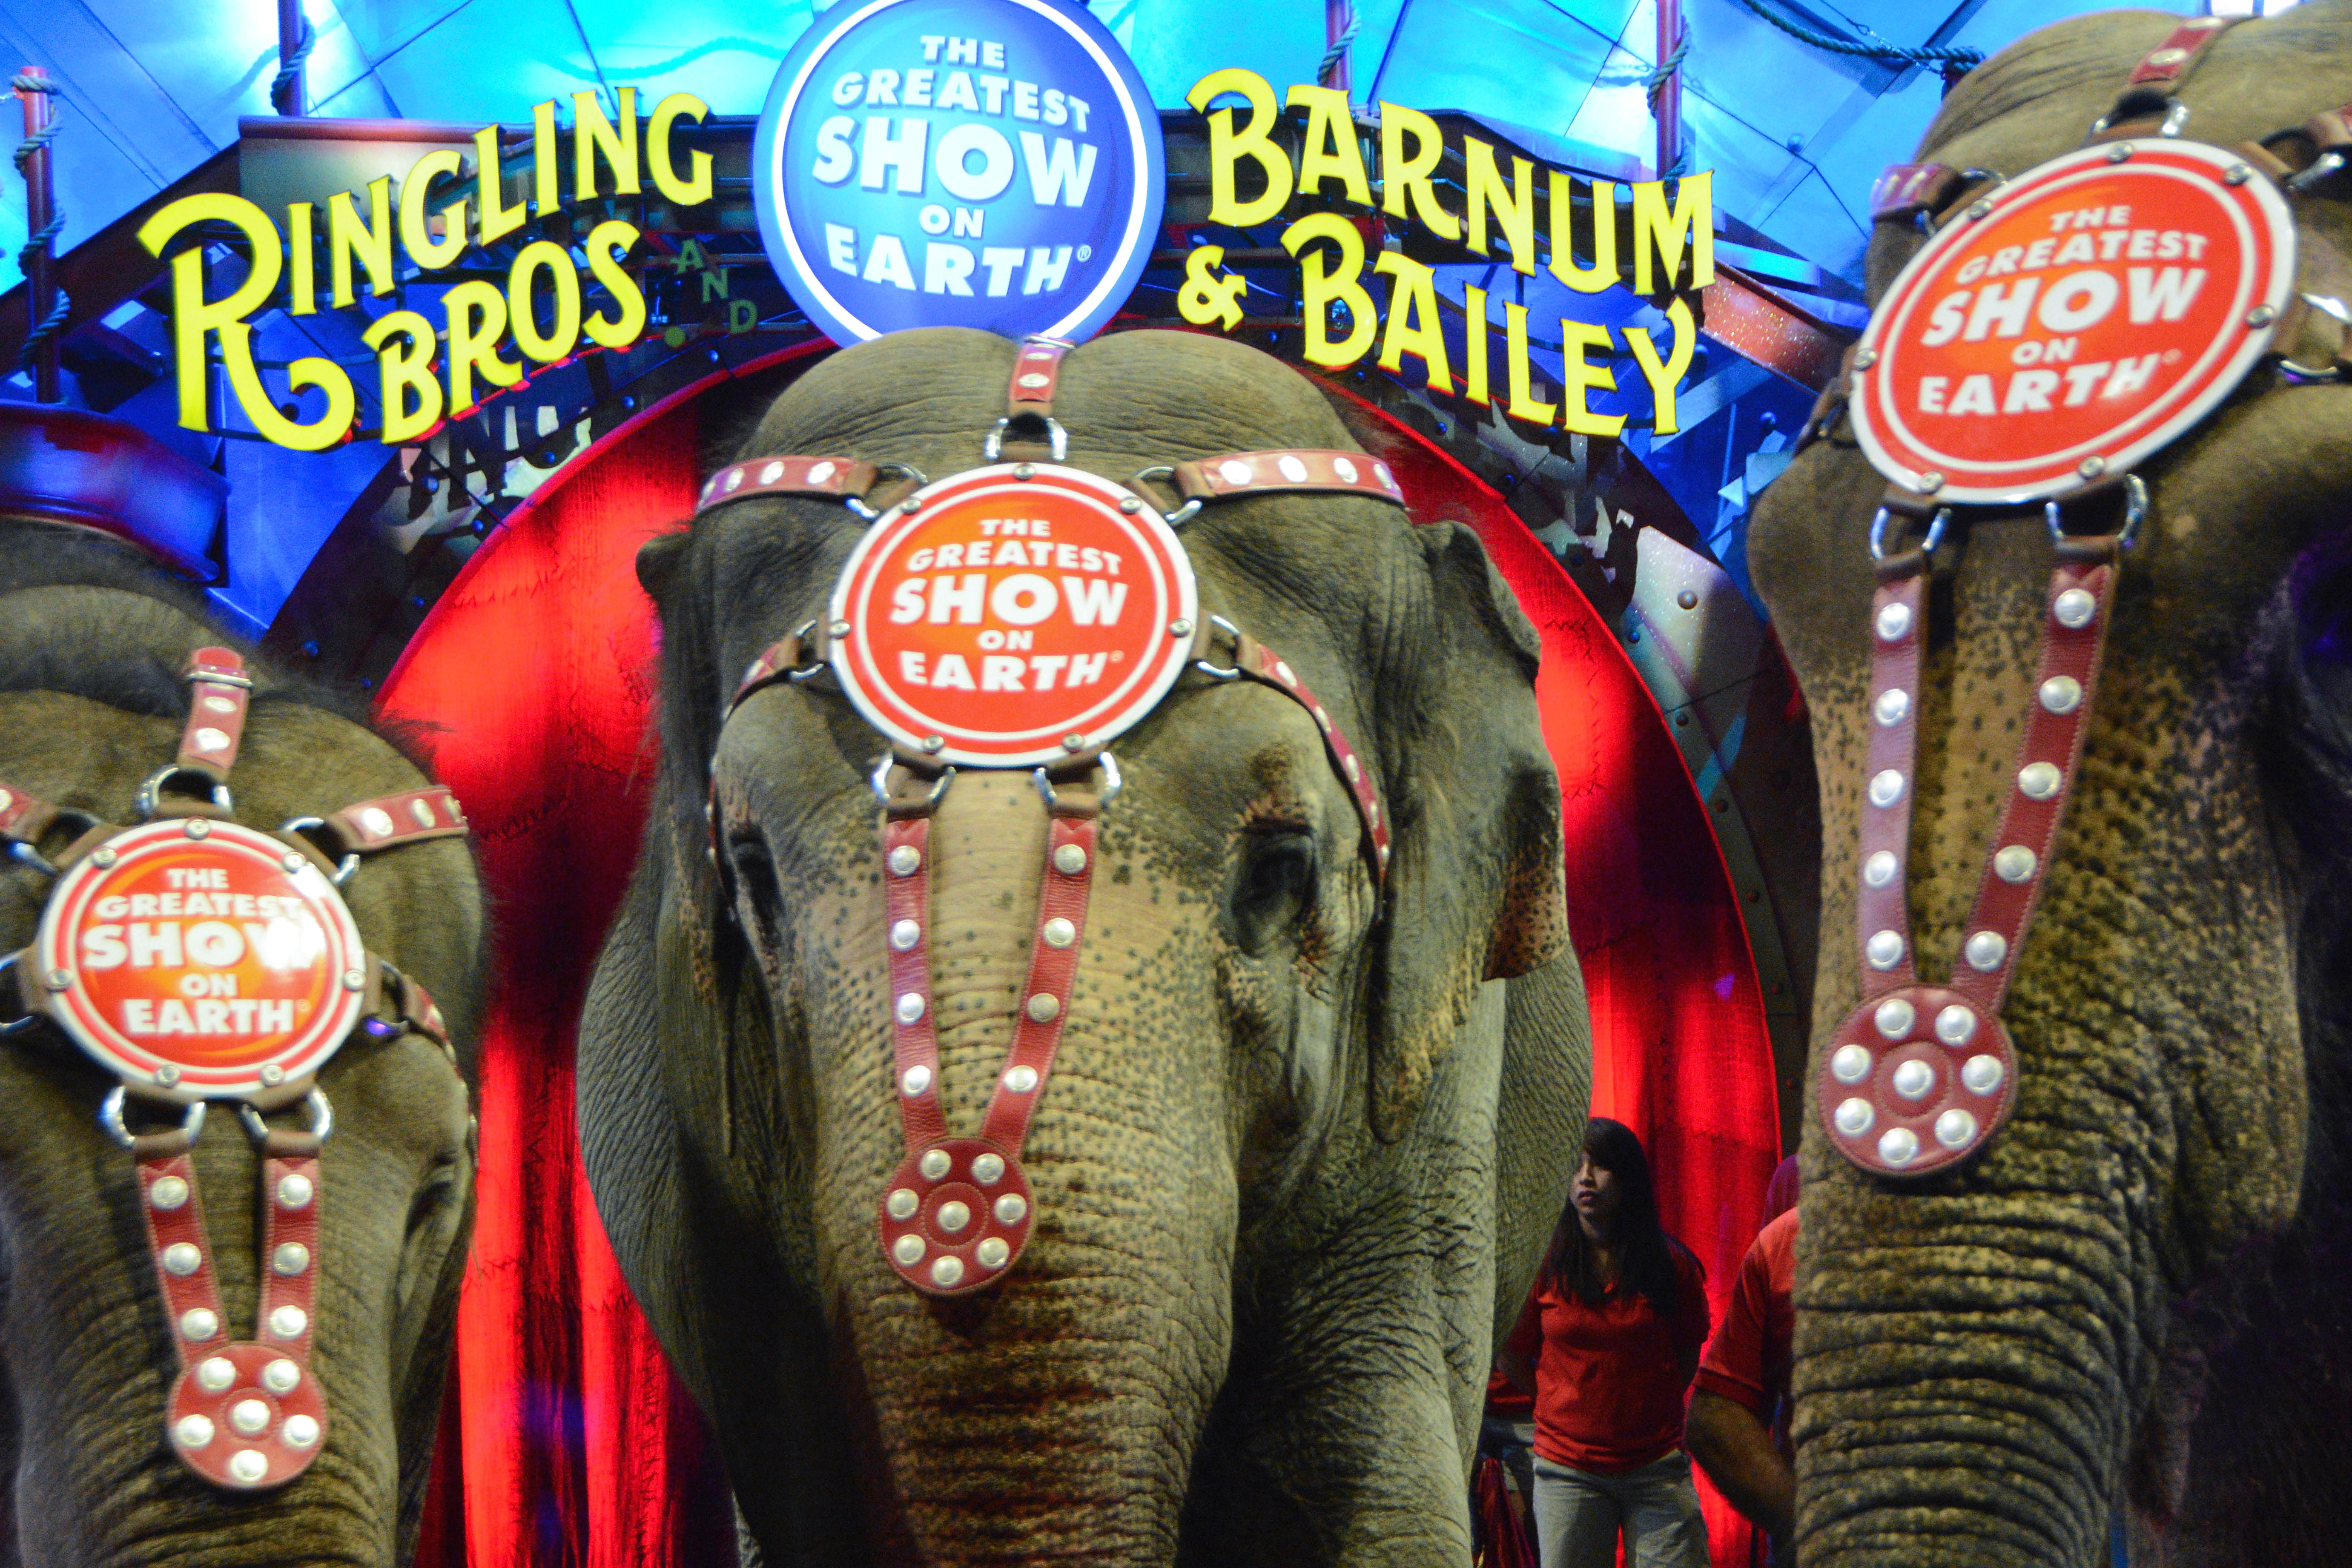 LOS ANGELES, CA - JULY 13:  General view of elephants and atmosphere at Ringling Bros. and Barnum & Bailey's 'Circus XTREME' VIP celebrity red carpet premiere at Staples Center on July 13, 2015 in Los Angeles, California.